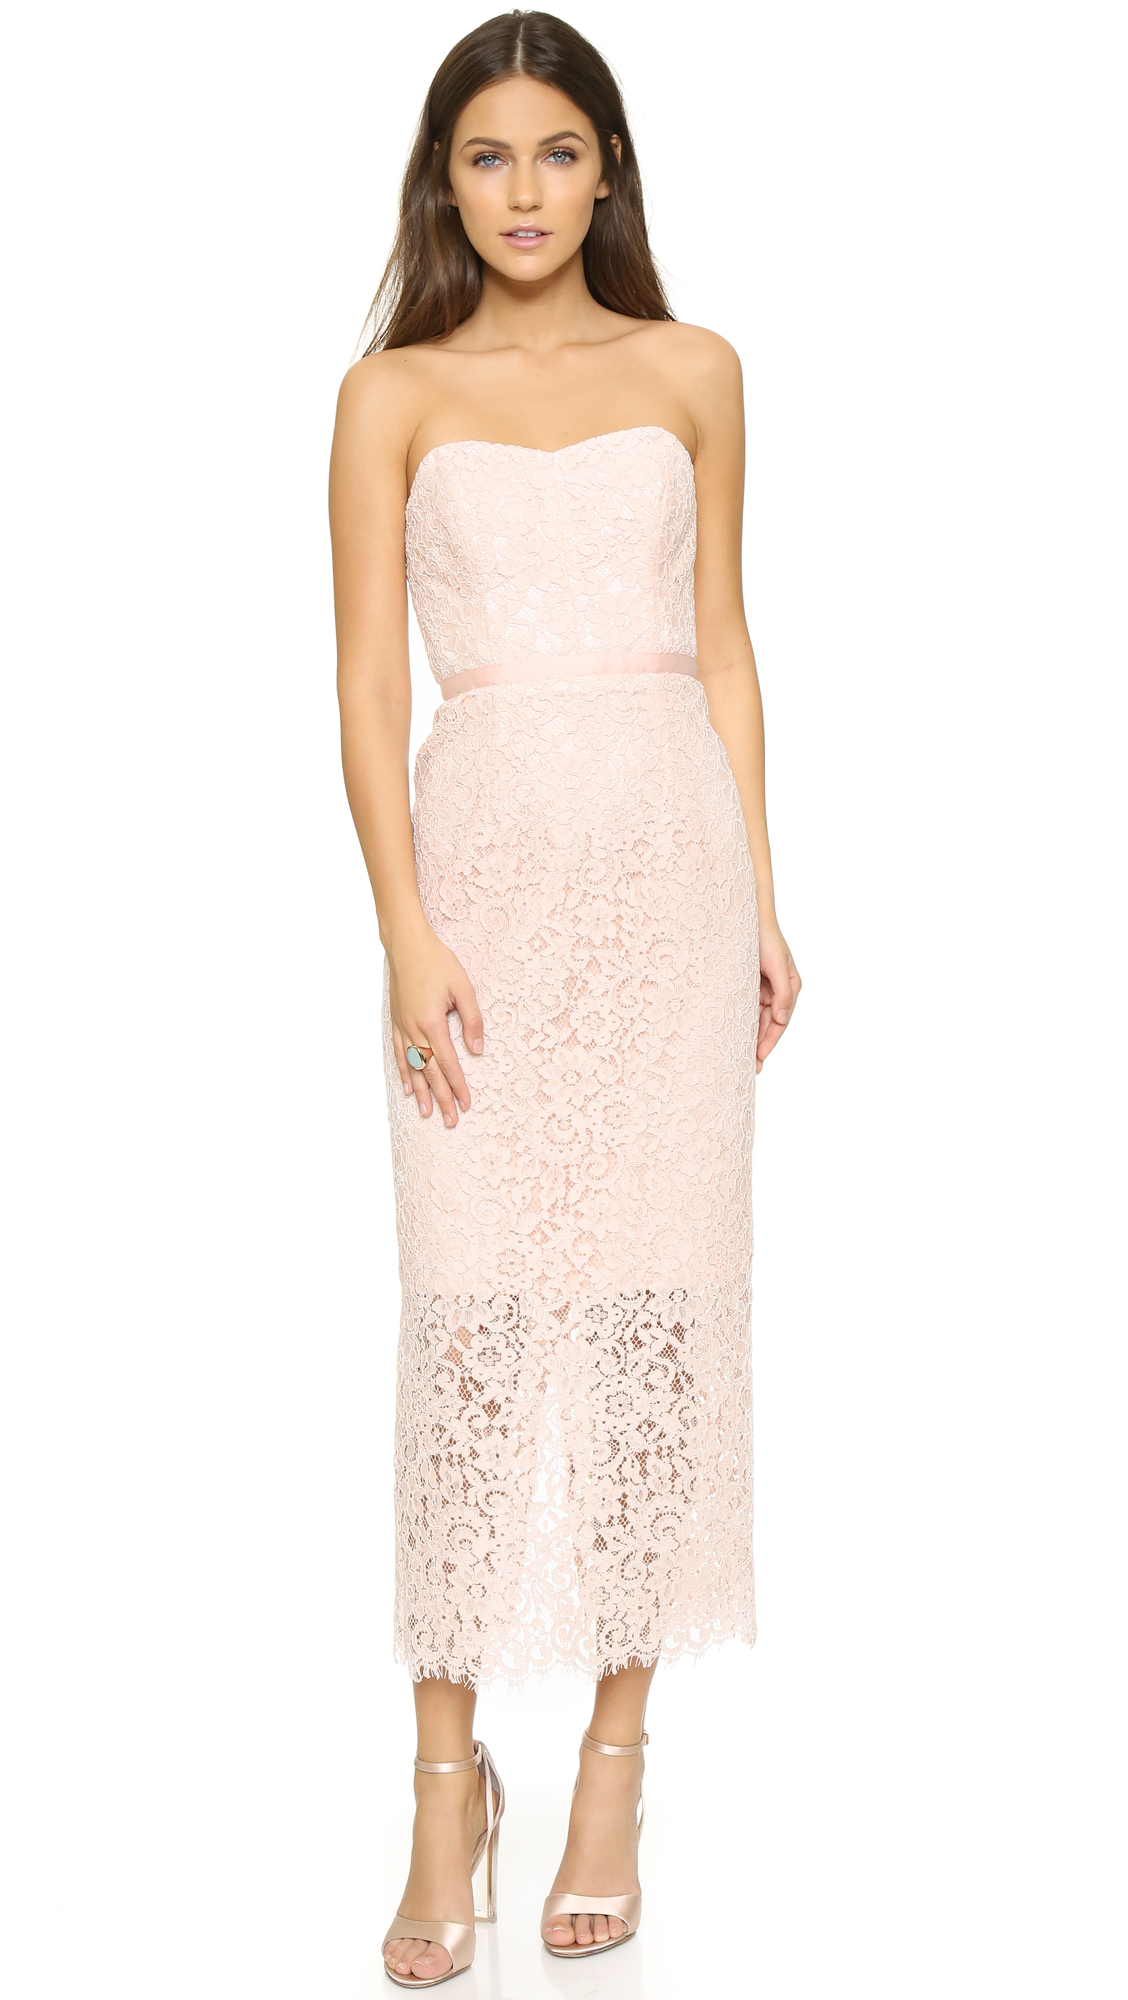 Shoshanna Ellie Lace Dress | SHOPBOP